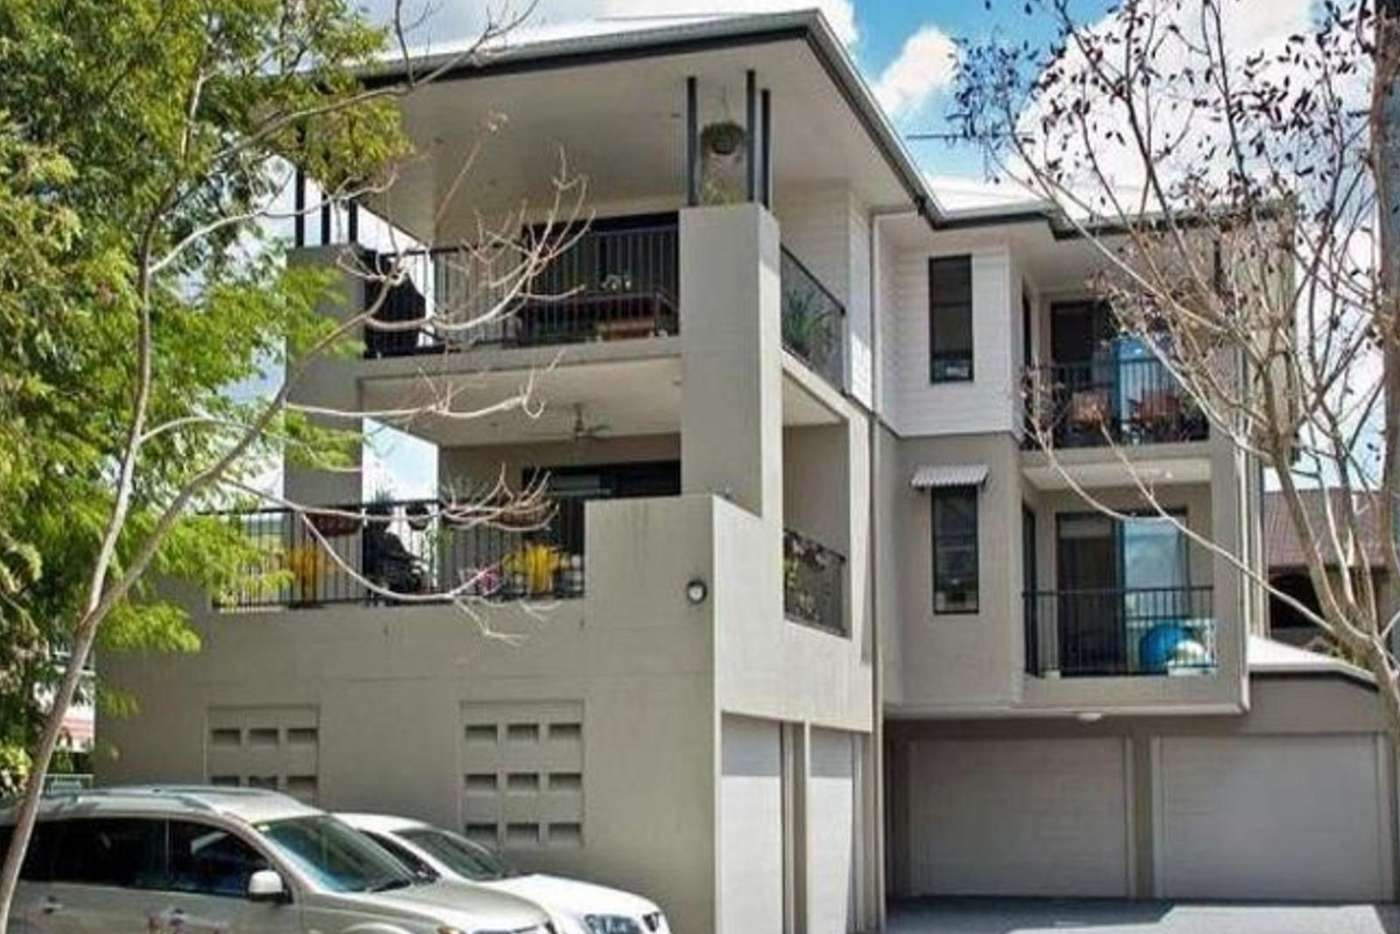 Main view of Homely apartment listing, 3/30 Railway Street, Alderley QLD 4051